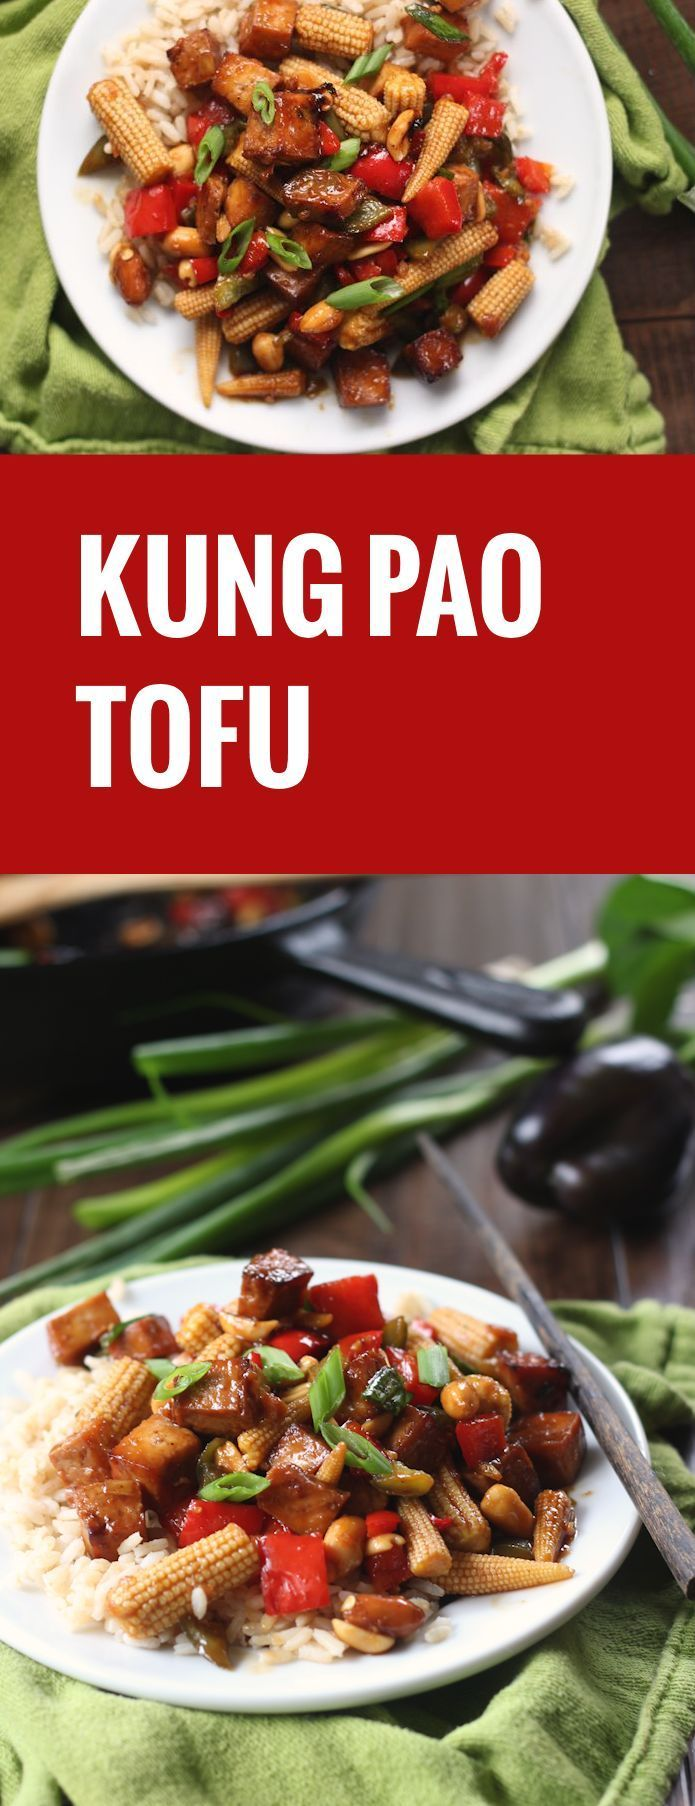 This vegan kung pao tofu is made with caramelized baked tofu bits in a spicy sauce with peanuts and stir-fried veggies.